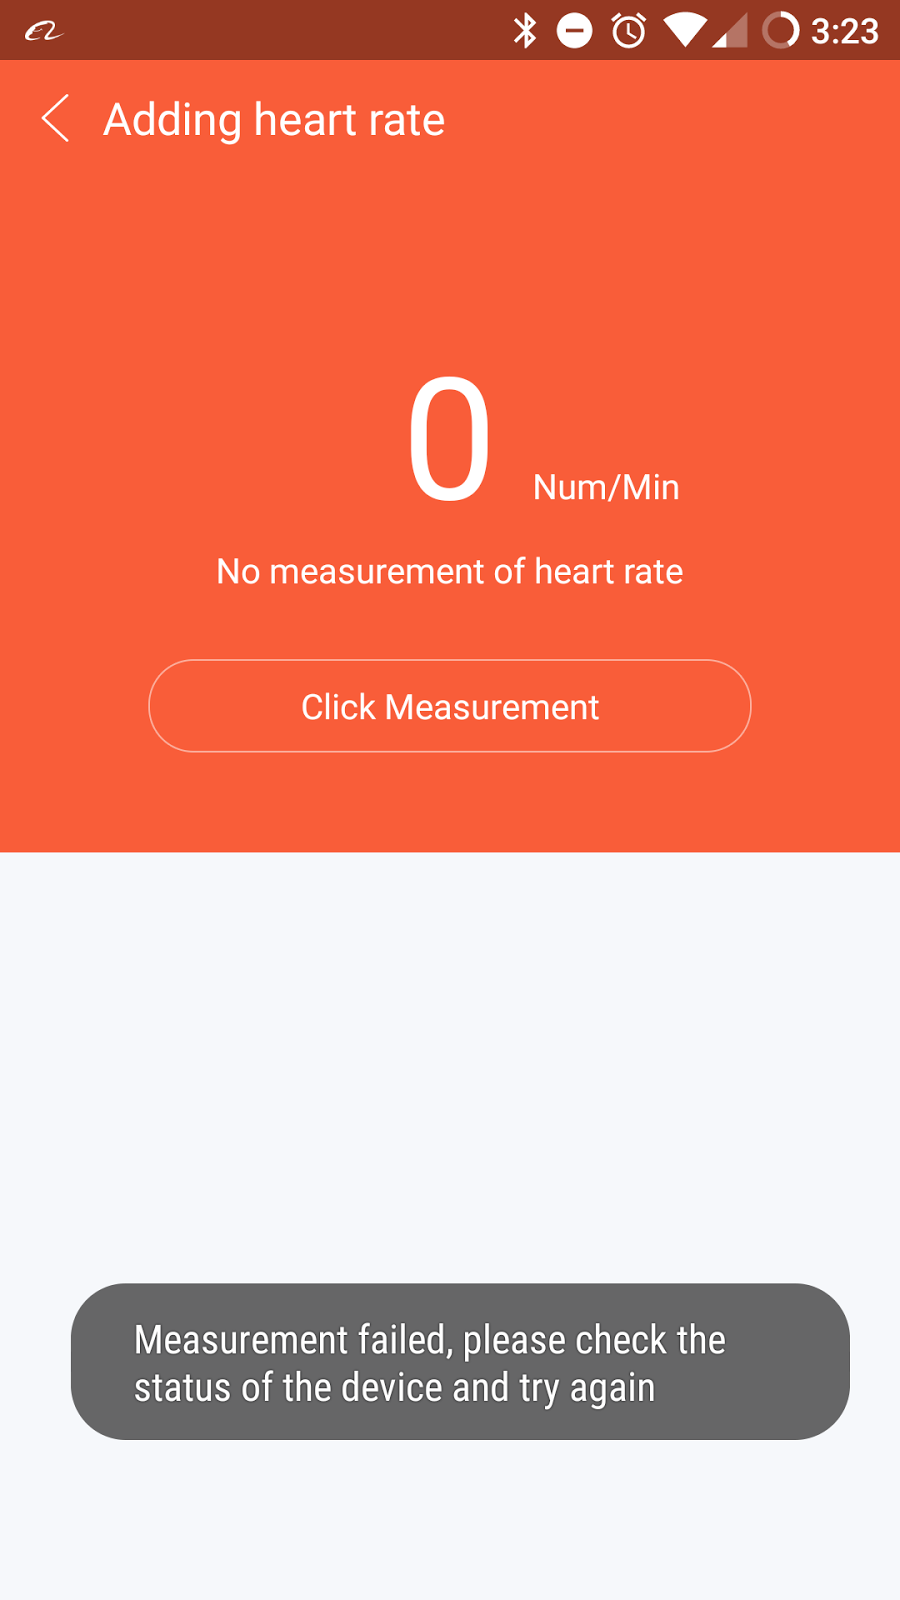 Longqi Heart Rate Smart Bracelet for iOS/Android Review